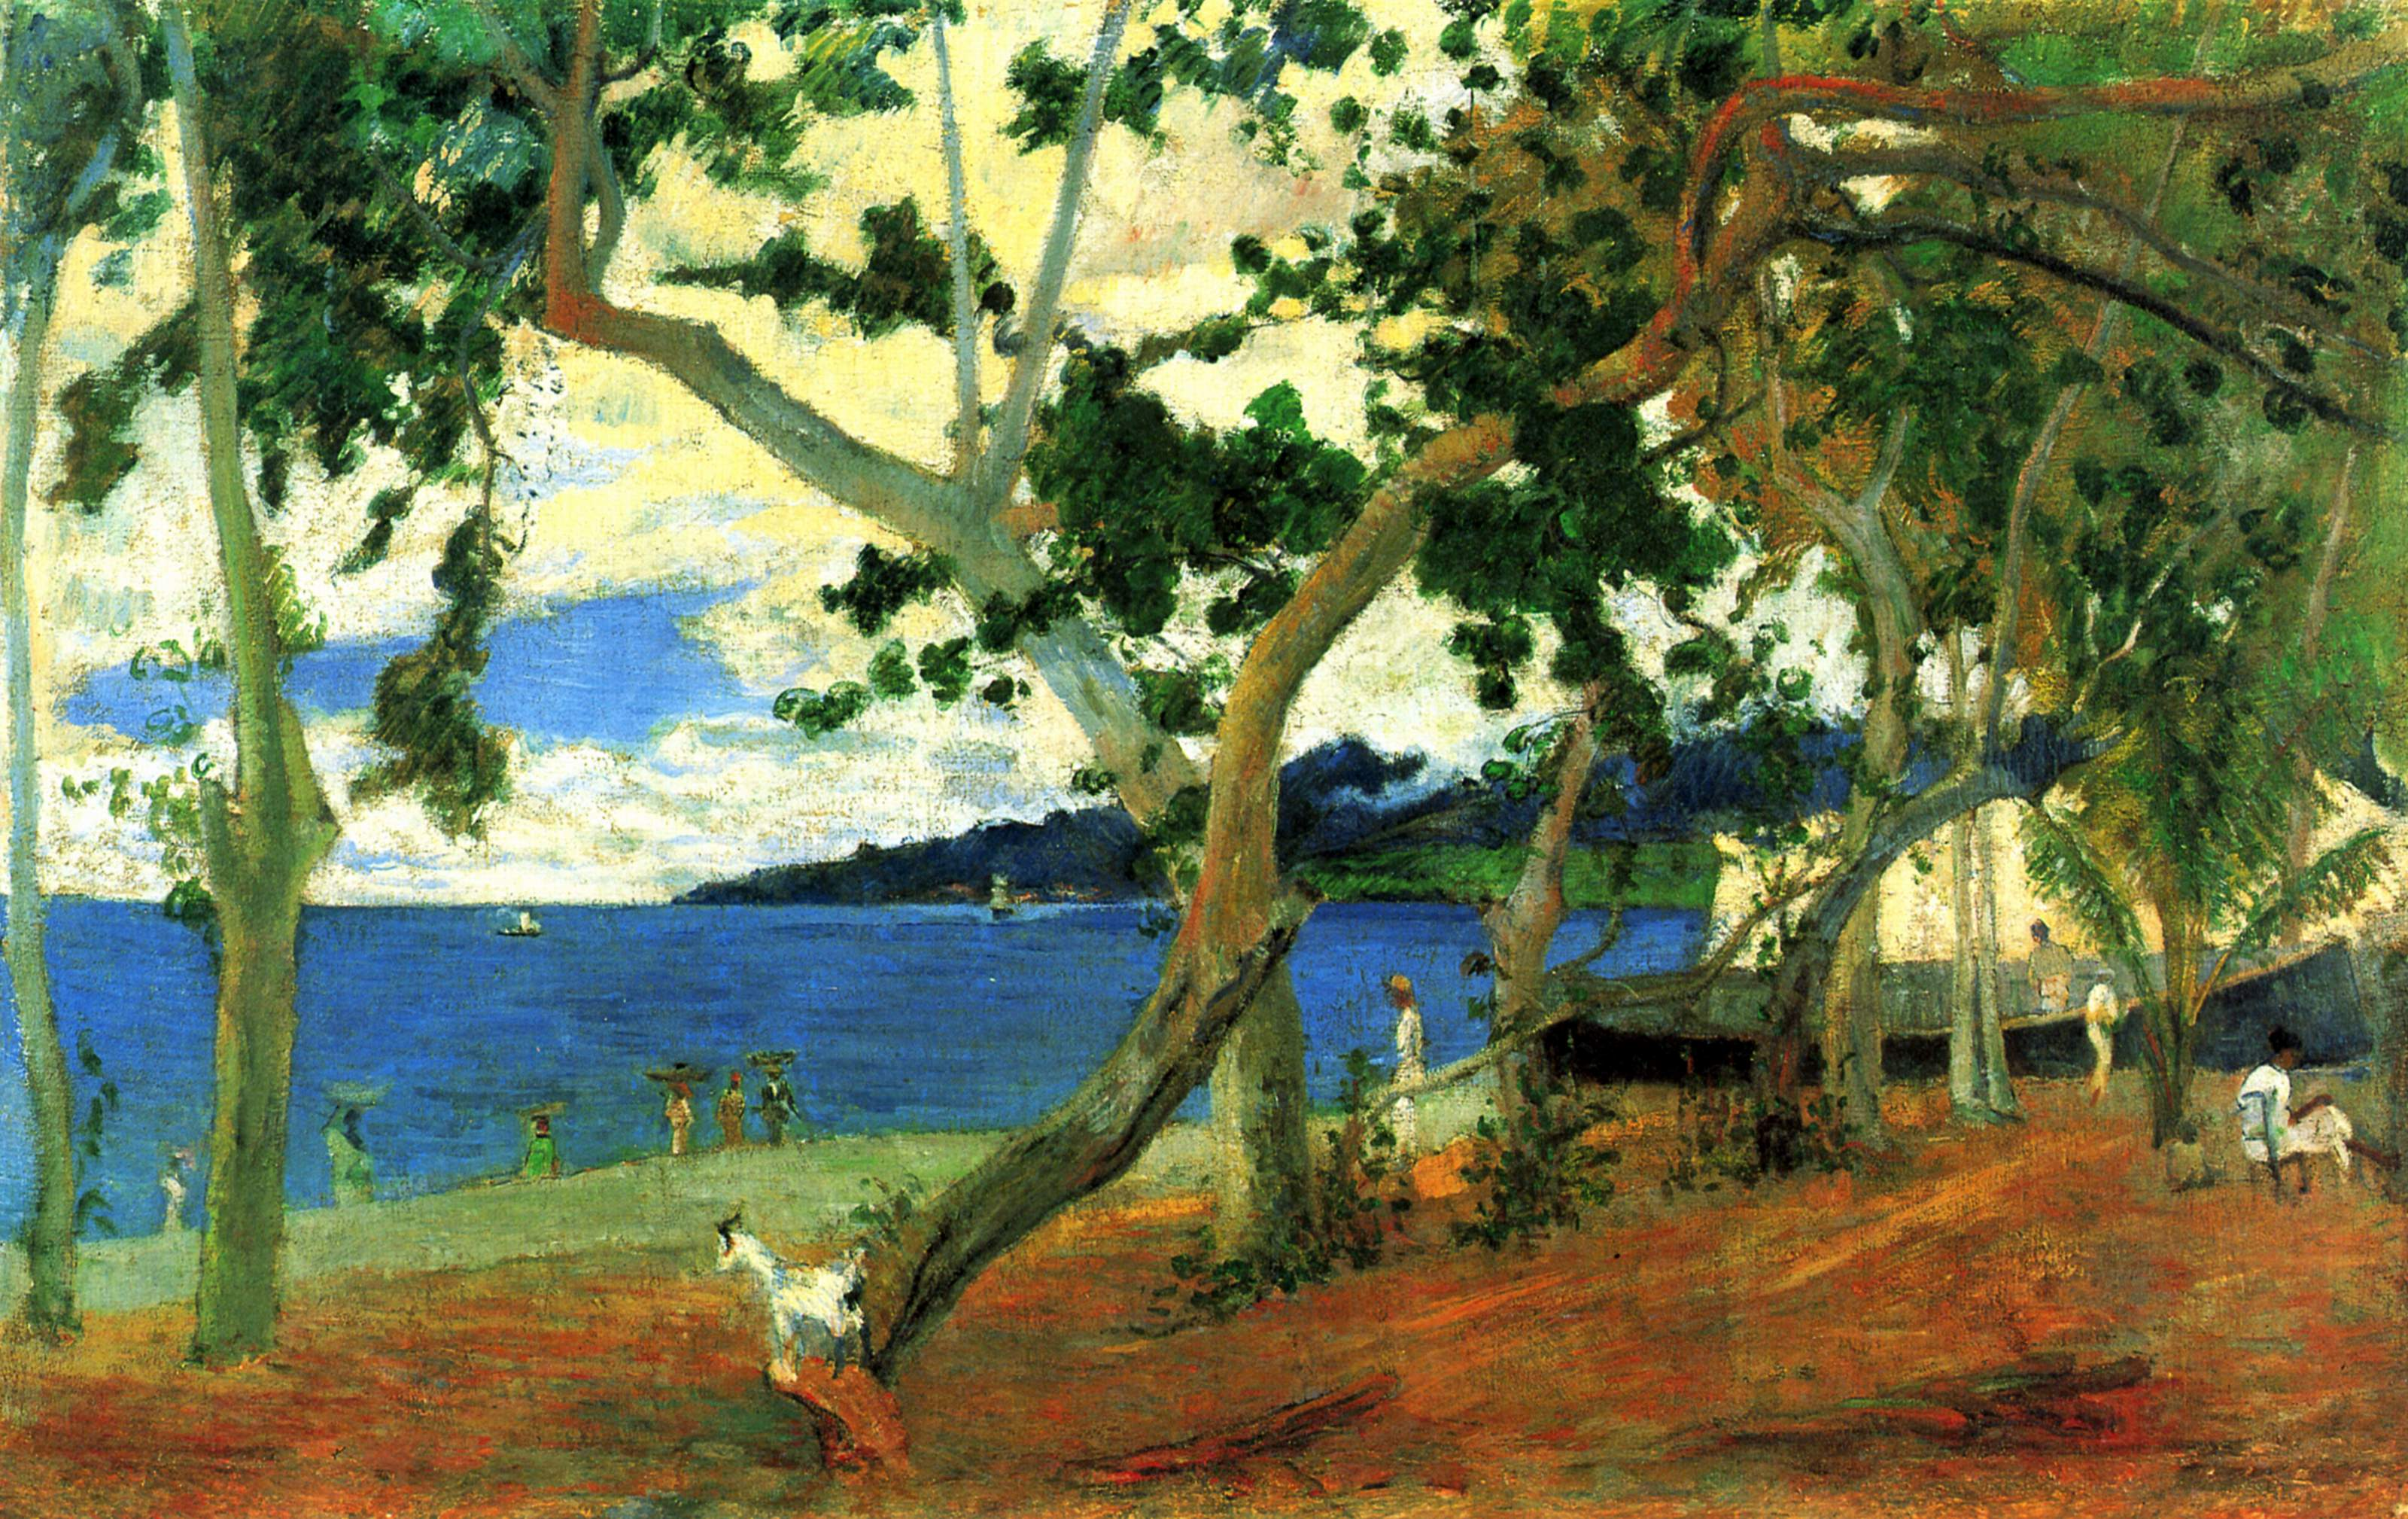 File:Paul Gauguin 088.jpg - Wikimedia Commons